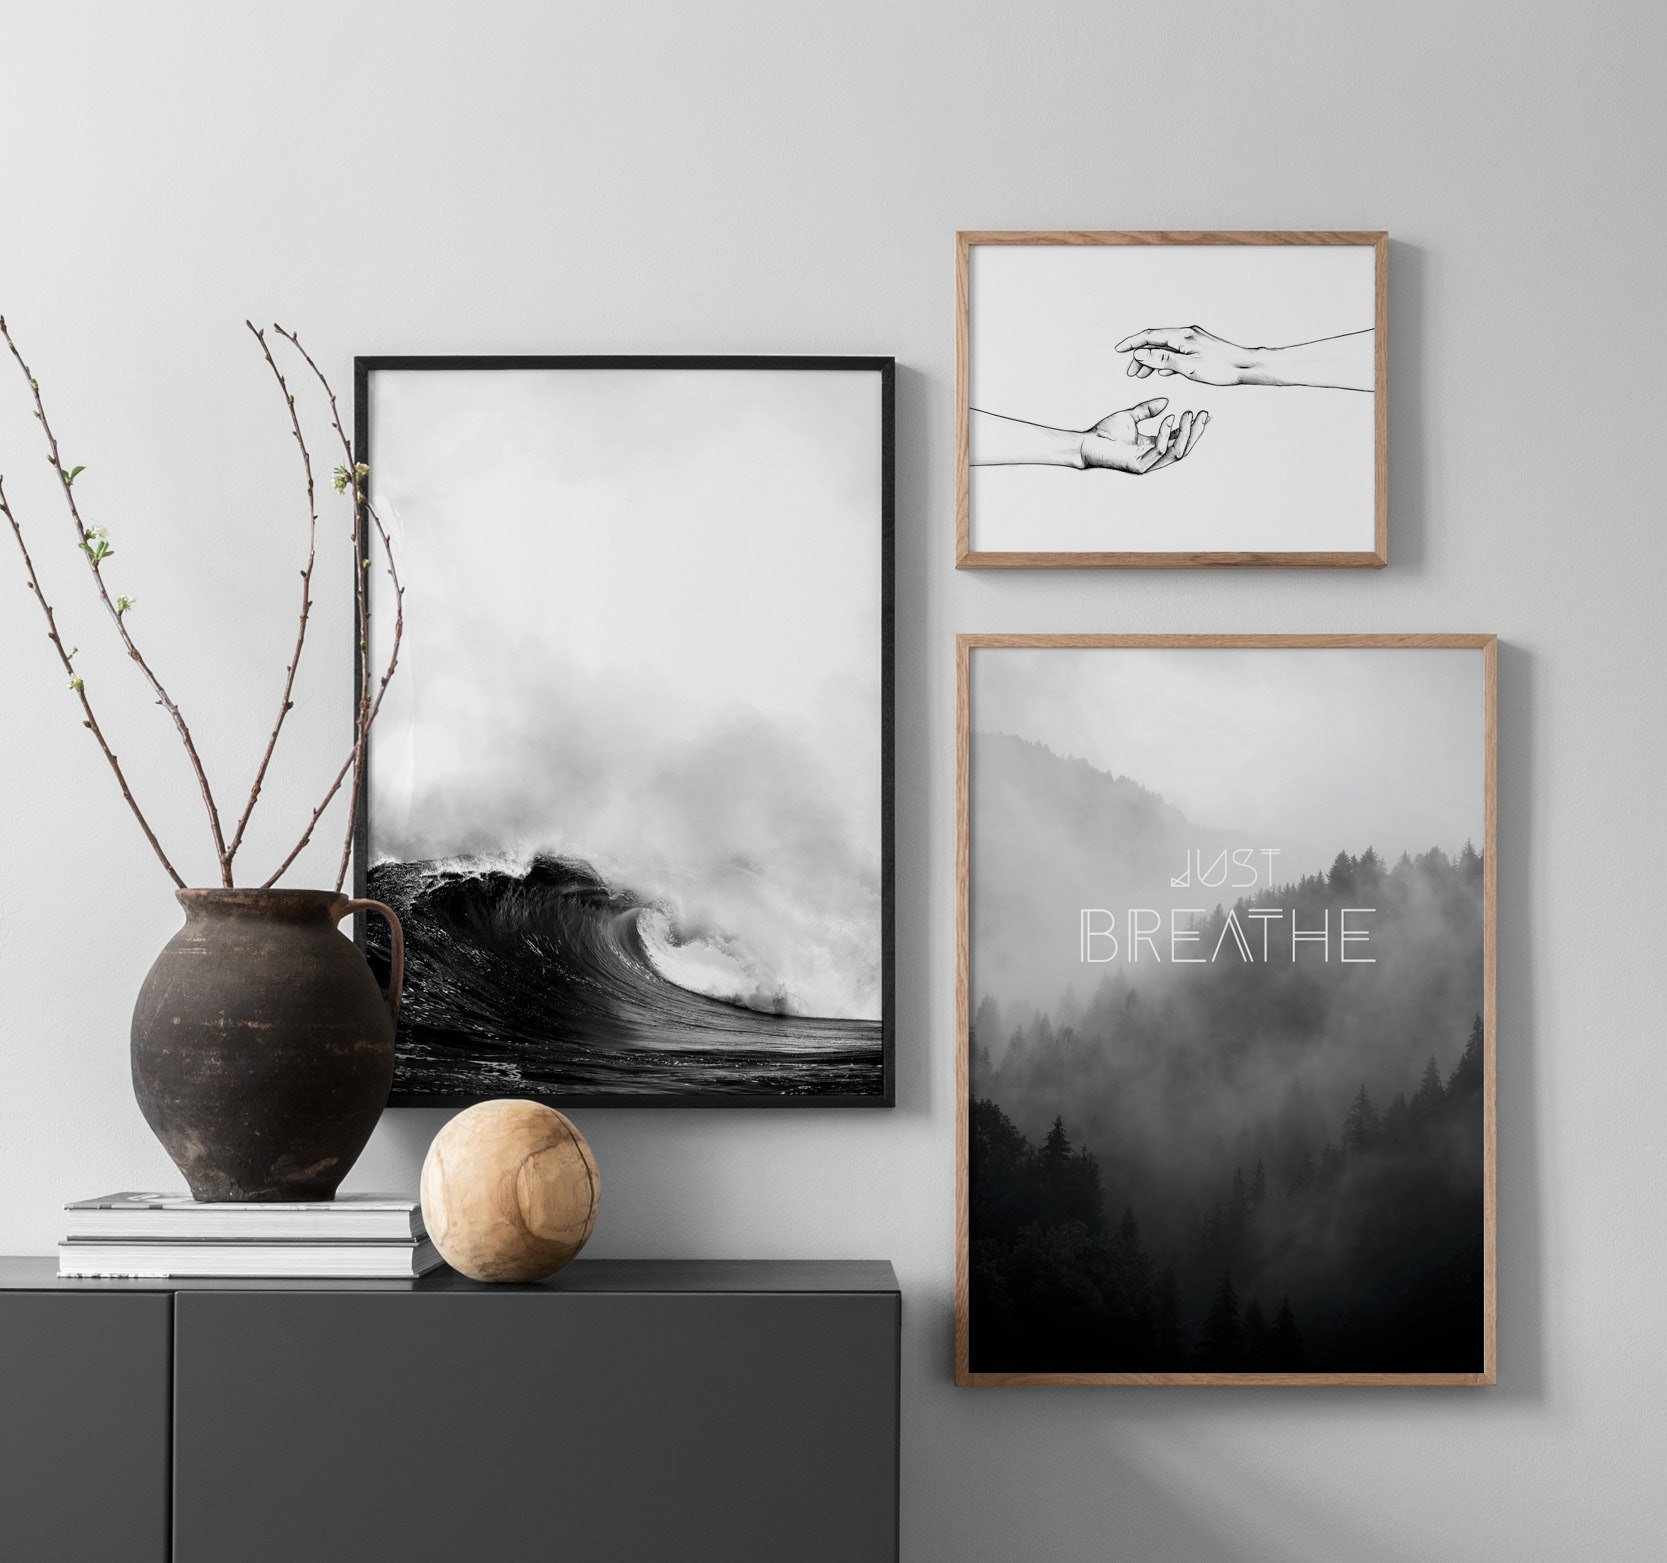 Interior inspiration – black-and-white hallway prints